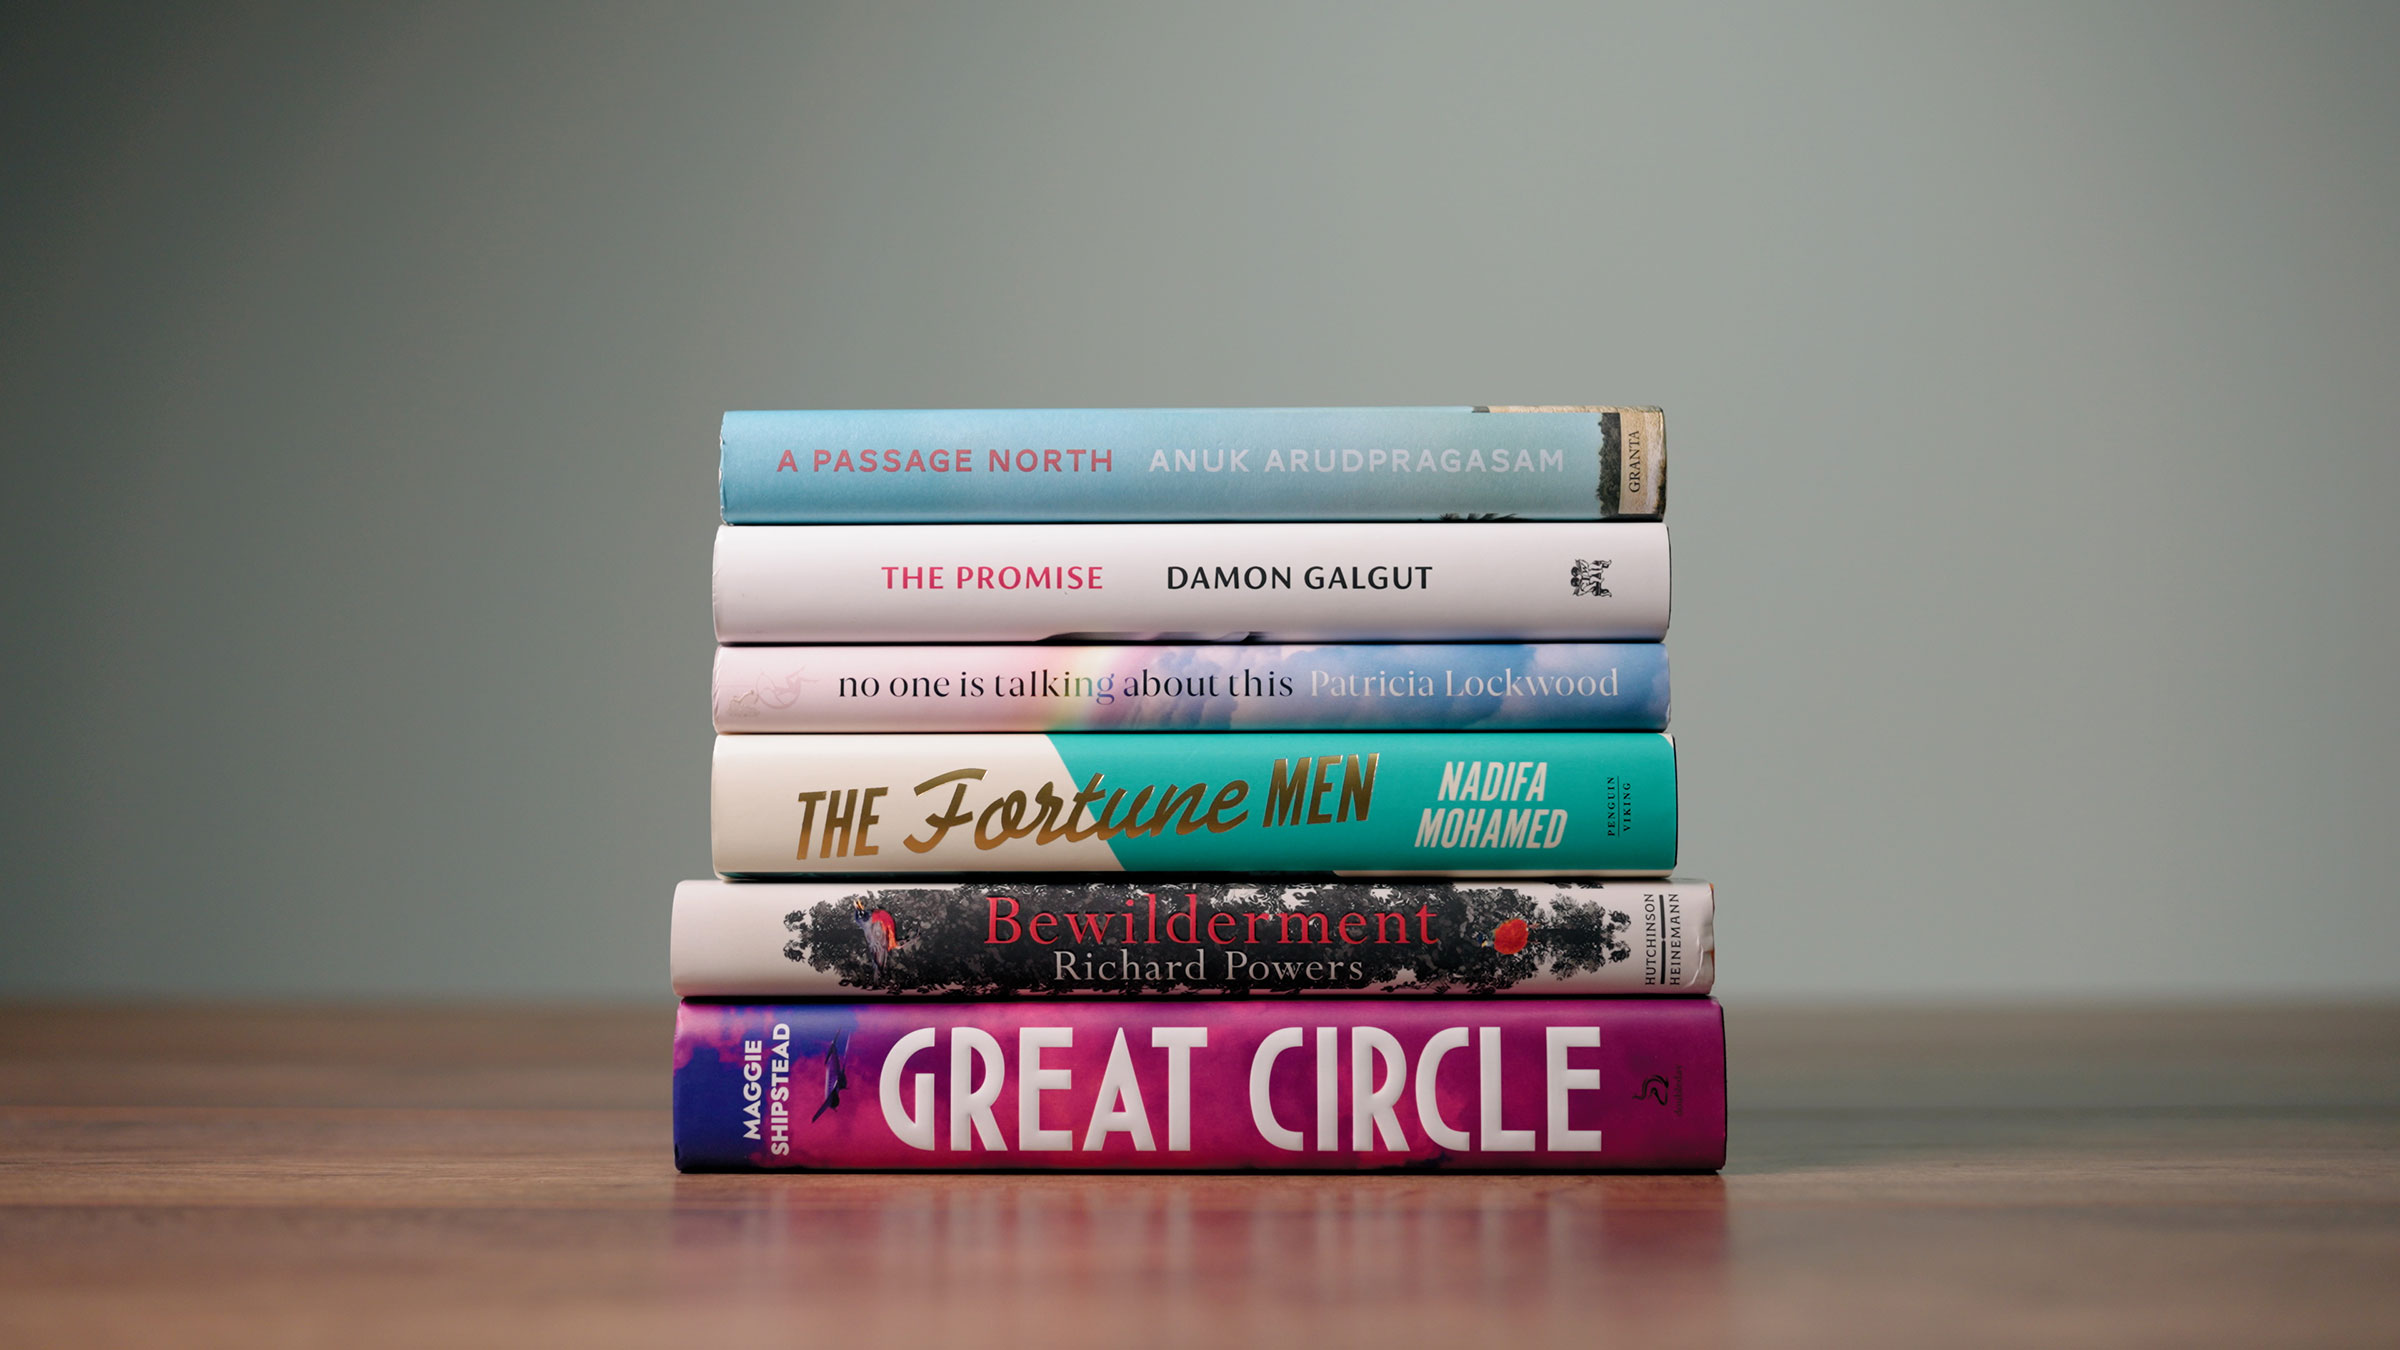 The Booker Prize 2021 shortlist includes novels by three U.S. writers, Patricia Lockwood, Richard Powers and Maggie Powell